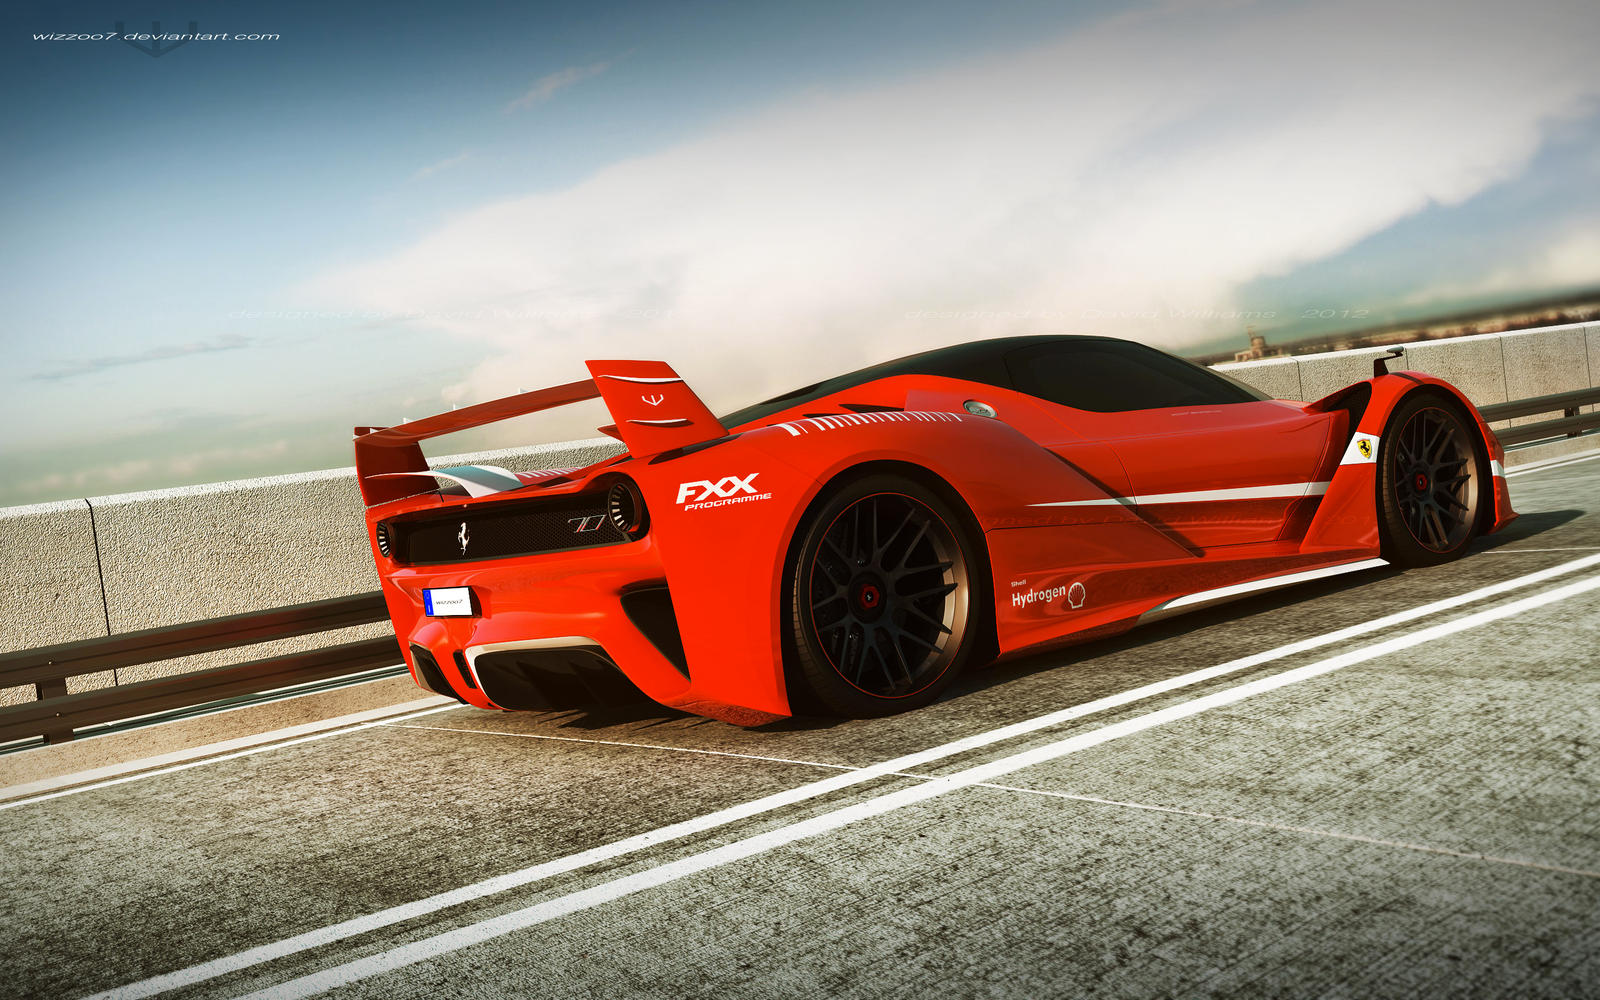 FXX by wizzoo7